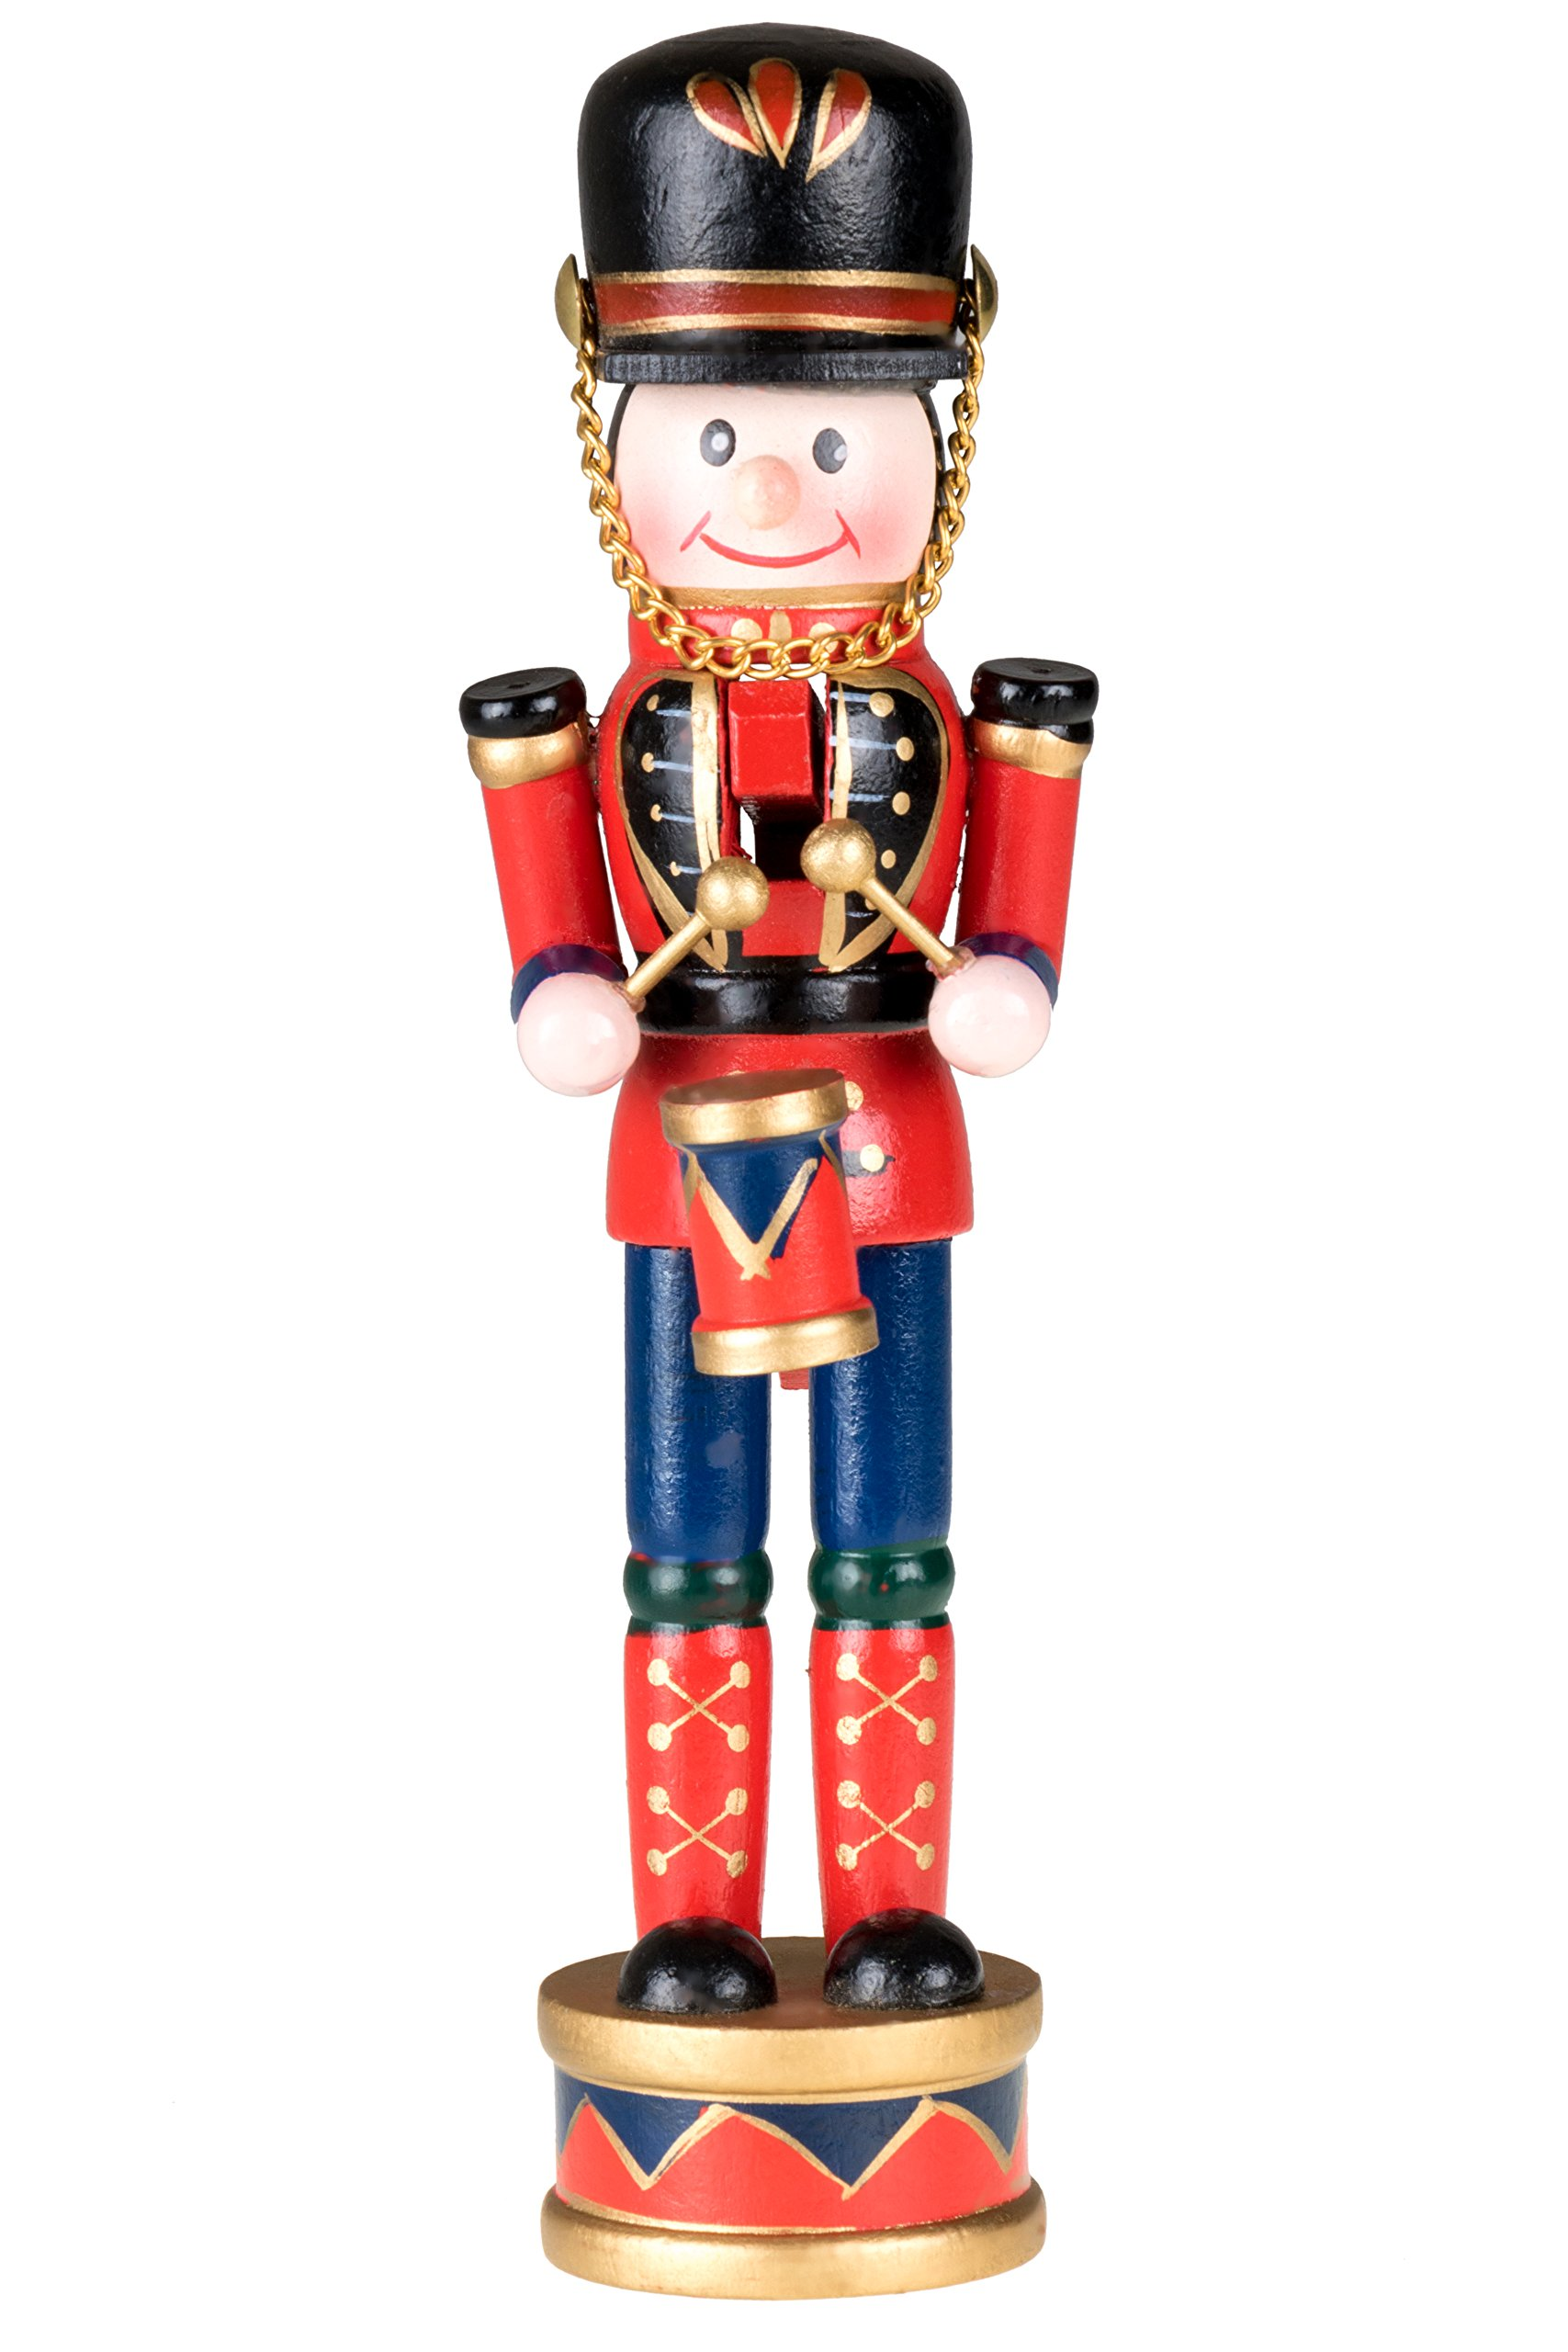 Clever Creations Drummer Nutcracker | Traditional Christmas Decor | Red, Black, Blue Drumming Uniform | Perfect for Any Collection | 7'' Tall Nutcracker Perfect for Shelves and Tables | 100% Wood |